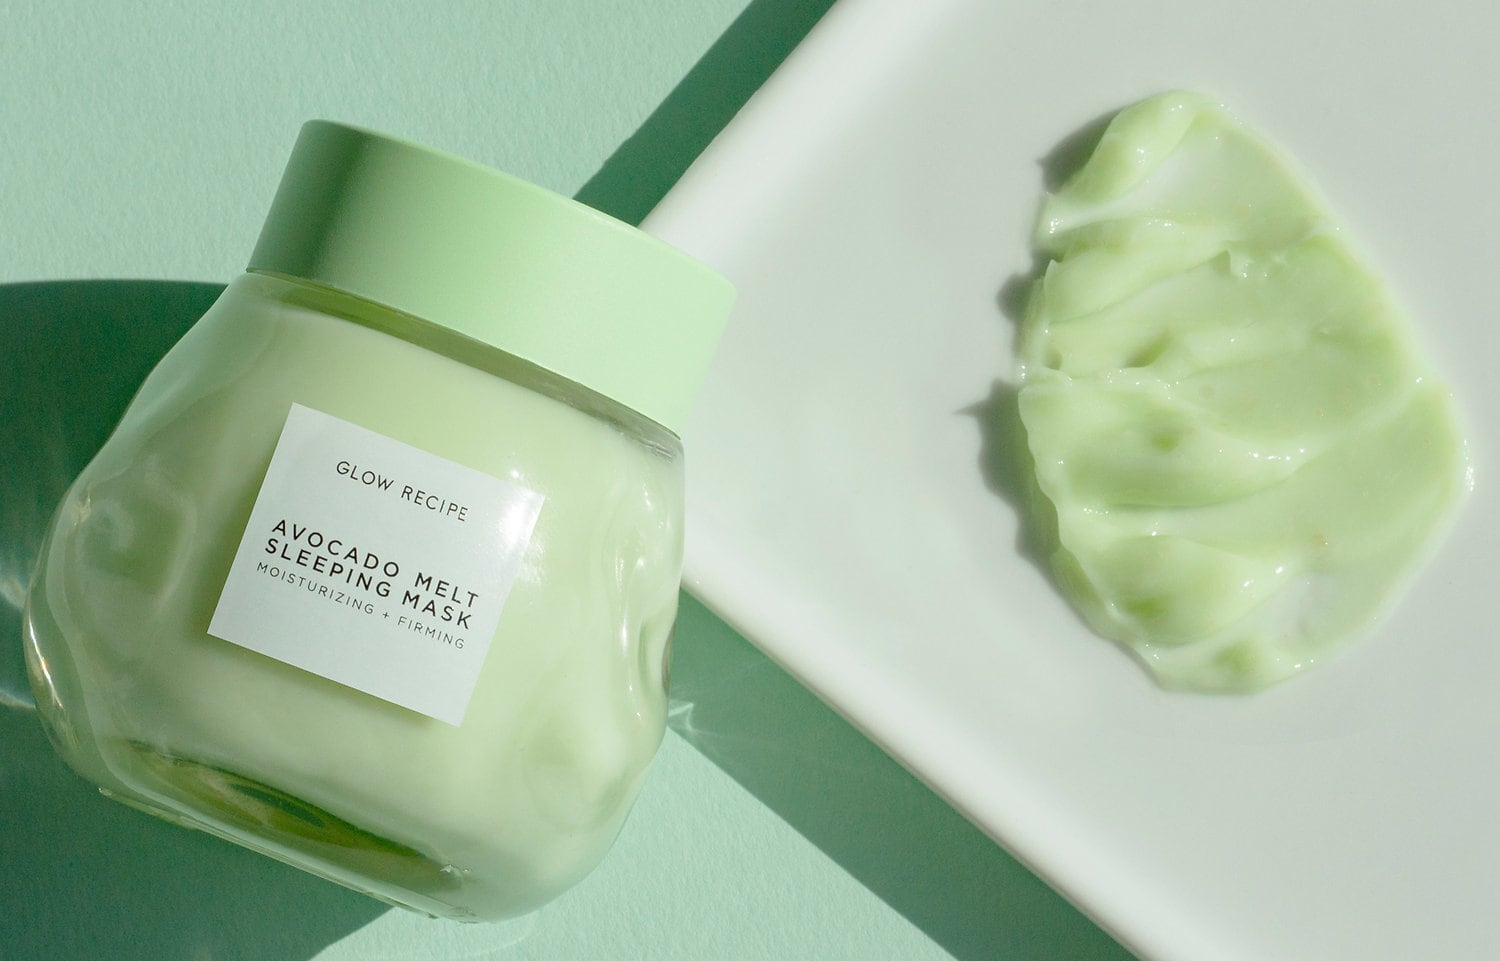 Avocado Melt Sleeping Mask